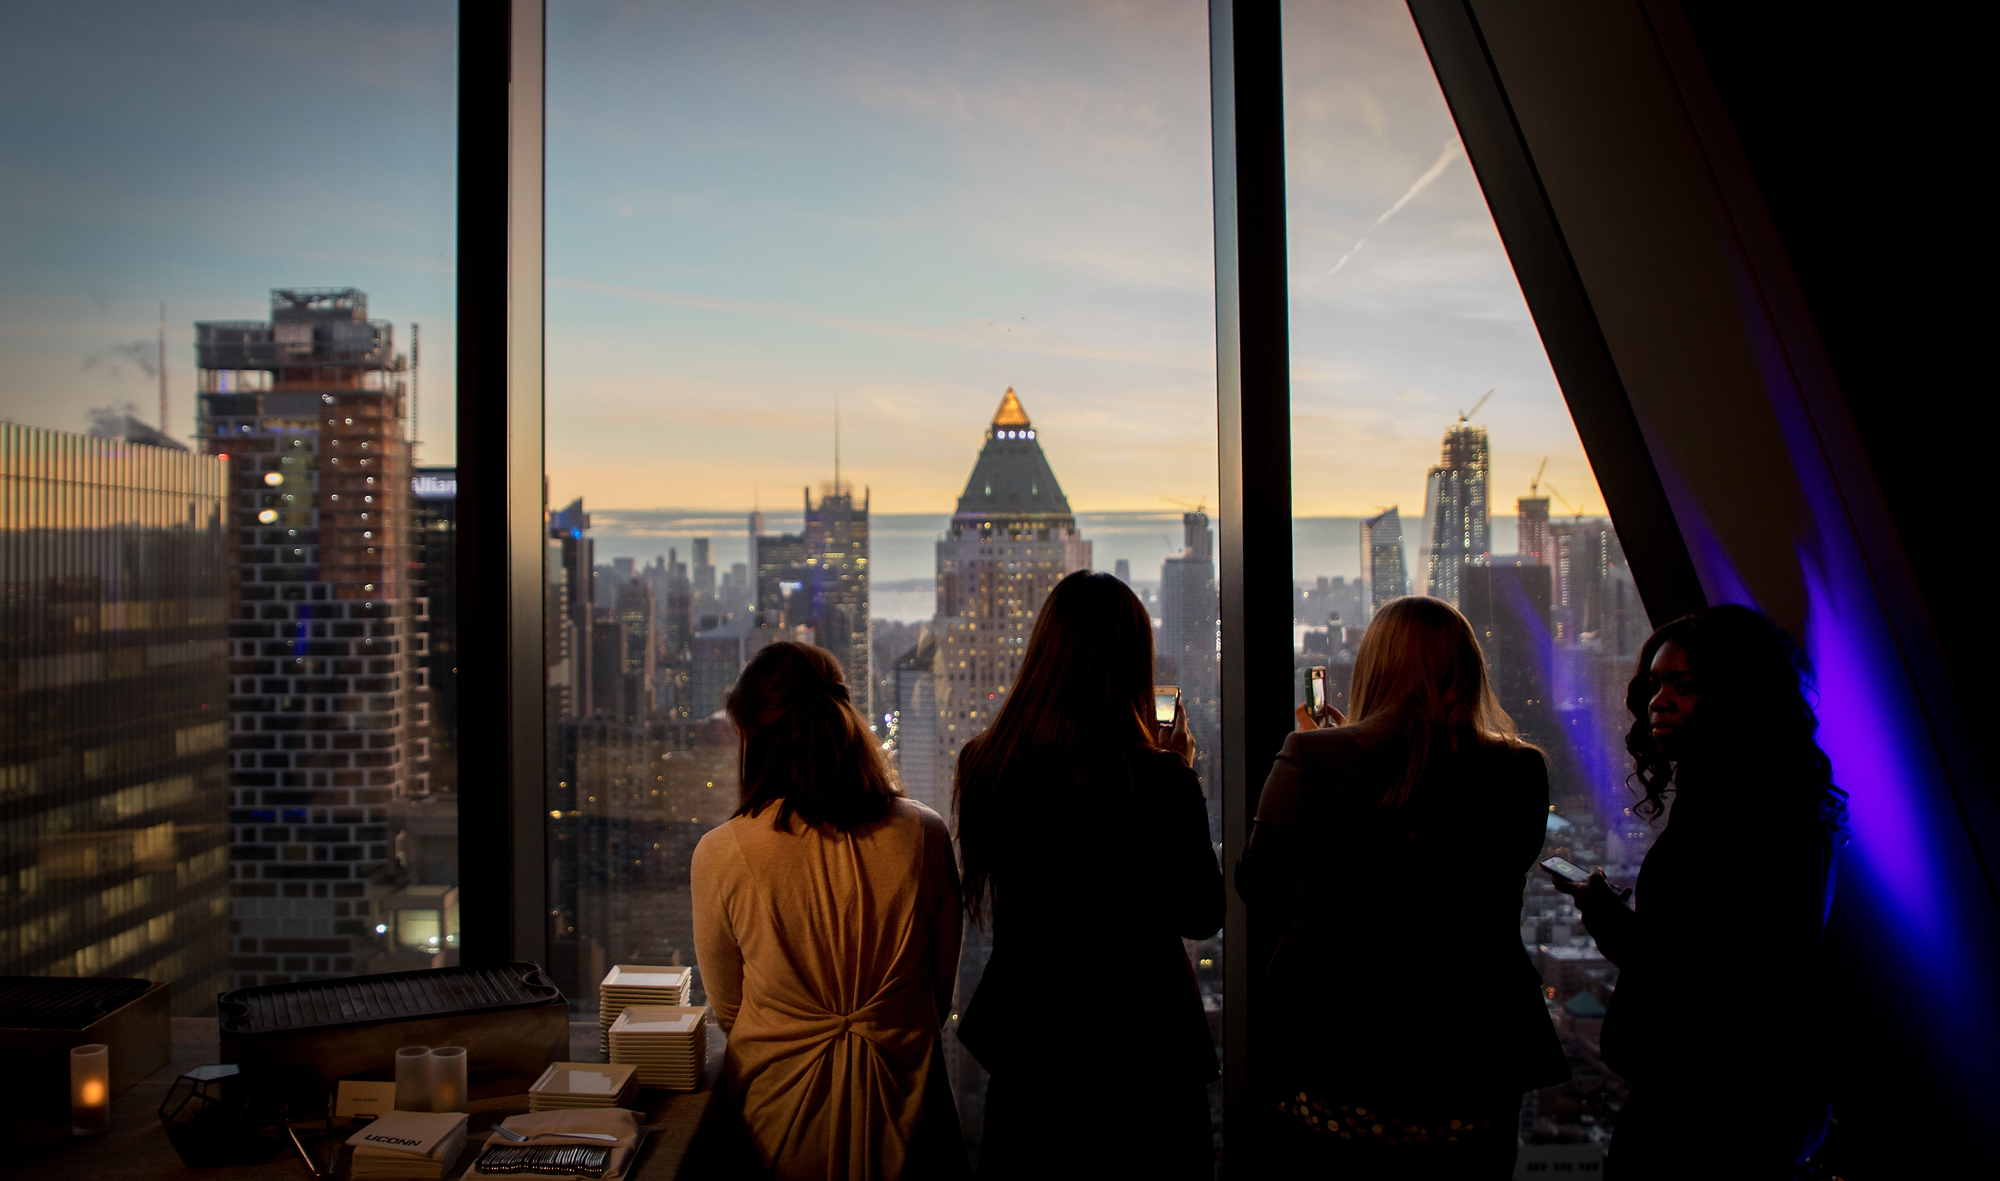 Students snap photos of the Manhattan skyline before the second annual Celebration of Scholarships event Tuesday, February 13, 2018 at Hearst Tower in New York City, New York.